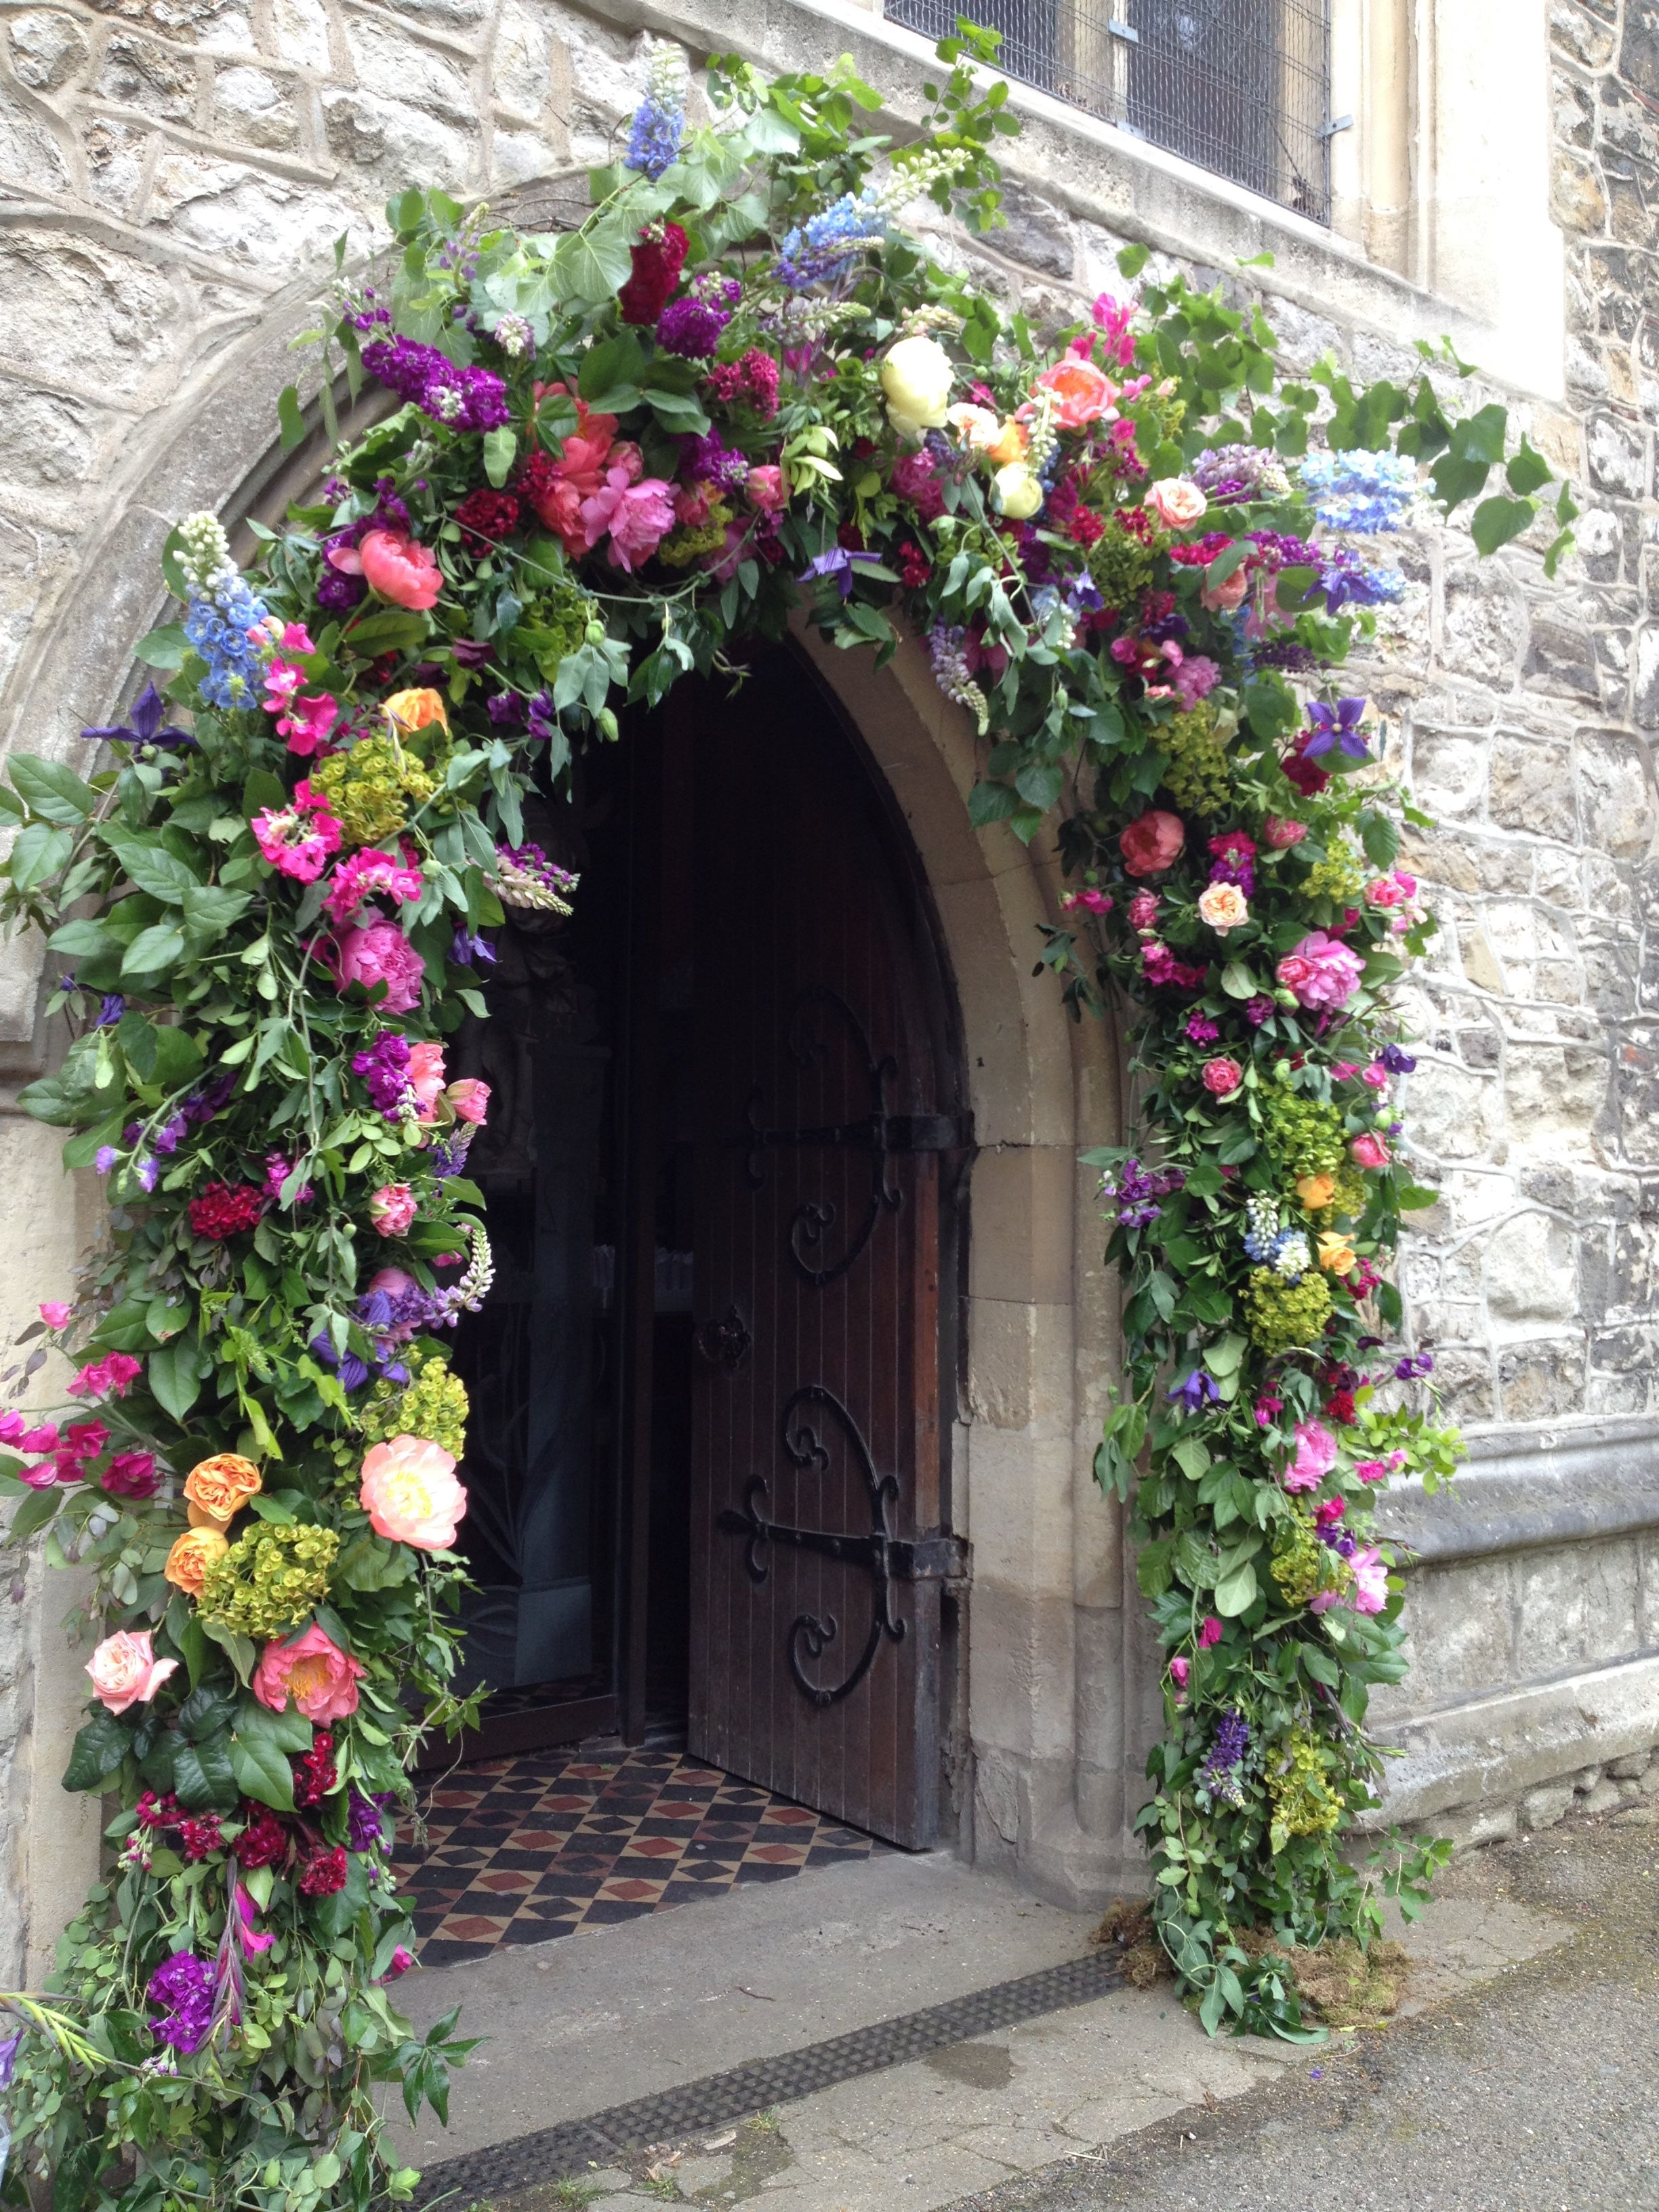 Easter wedding archway corporate events easter and bridal showers colourful floral arch for the ceremony not necessarily this large floral archfloral decorationswedding junglespirit Images